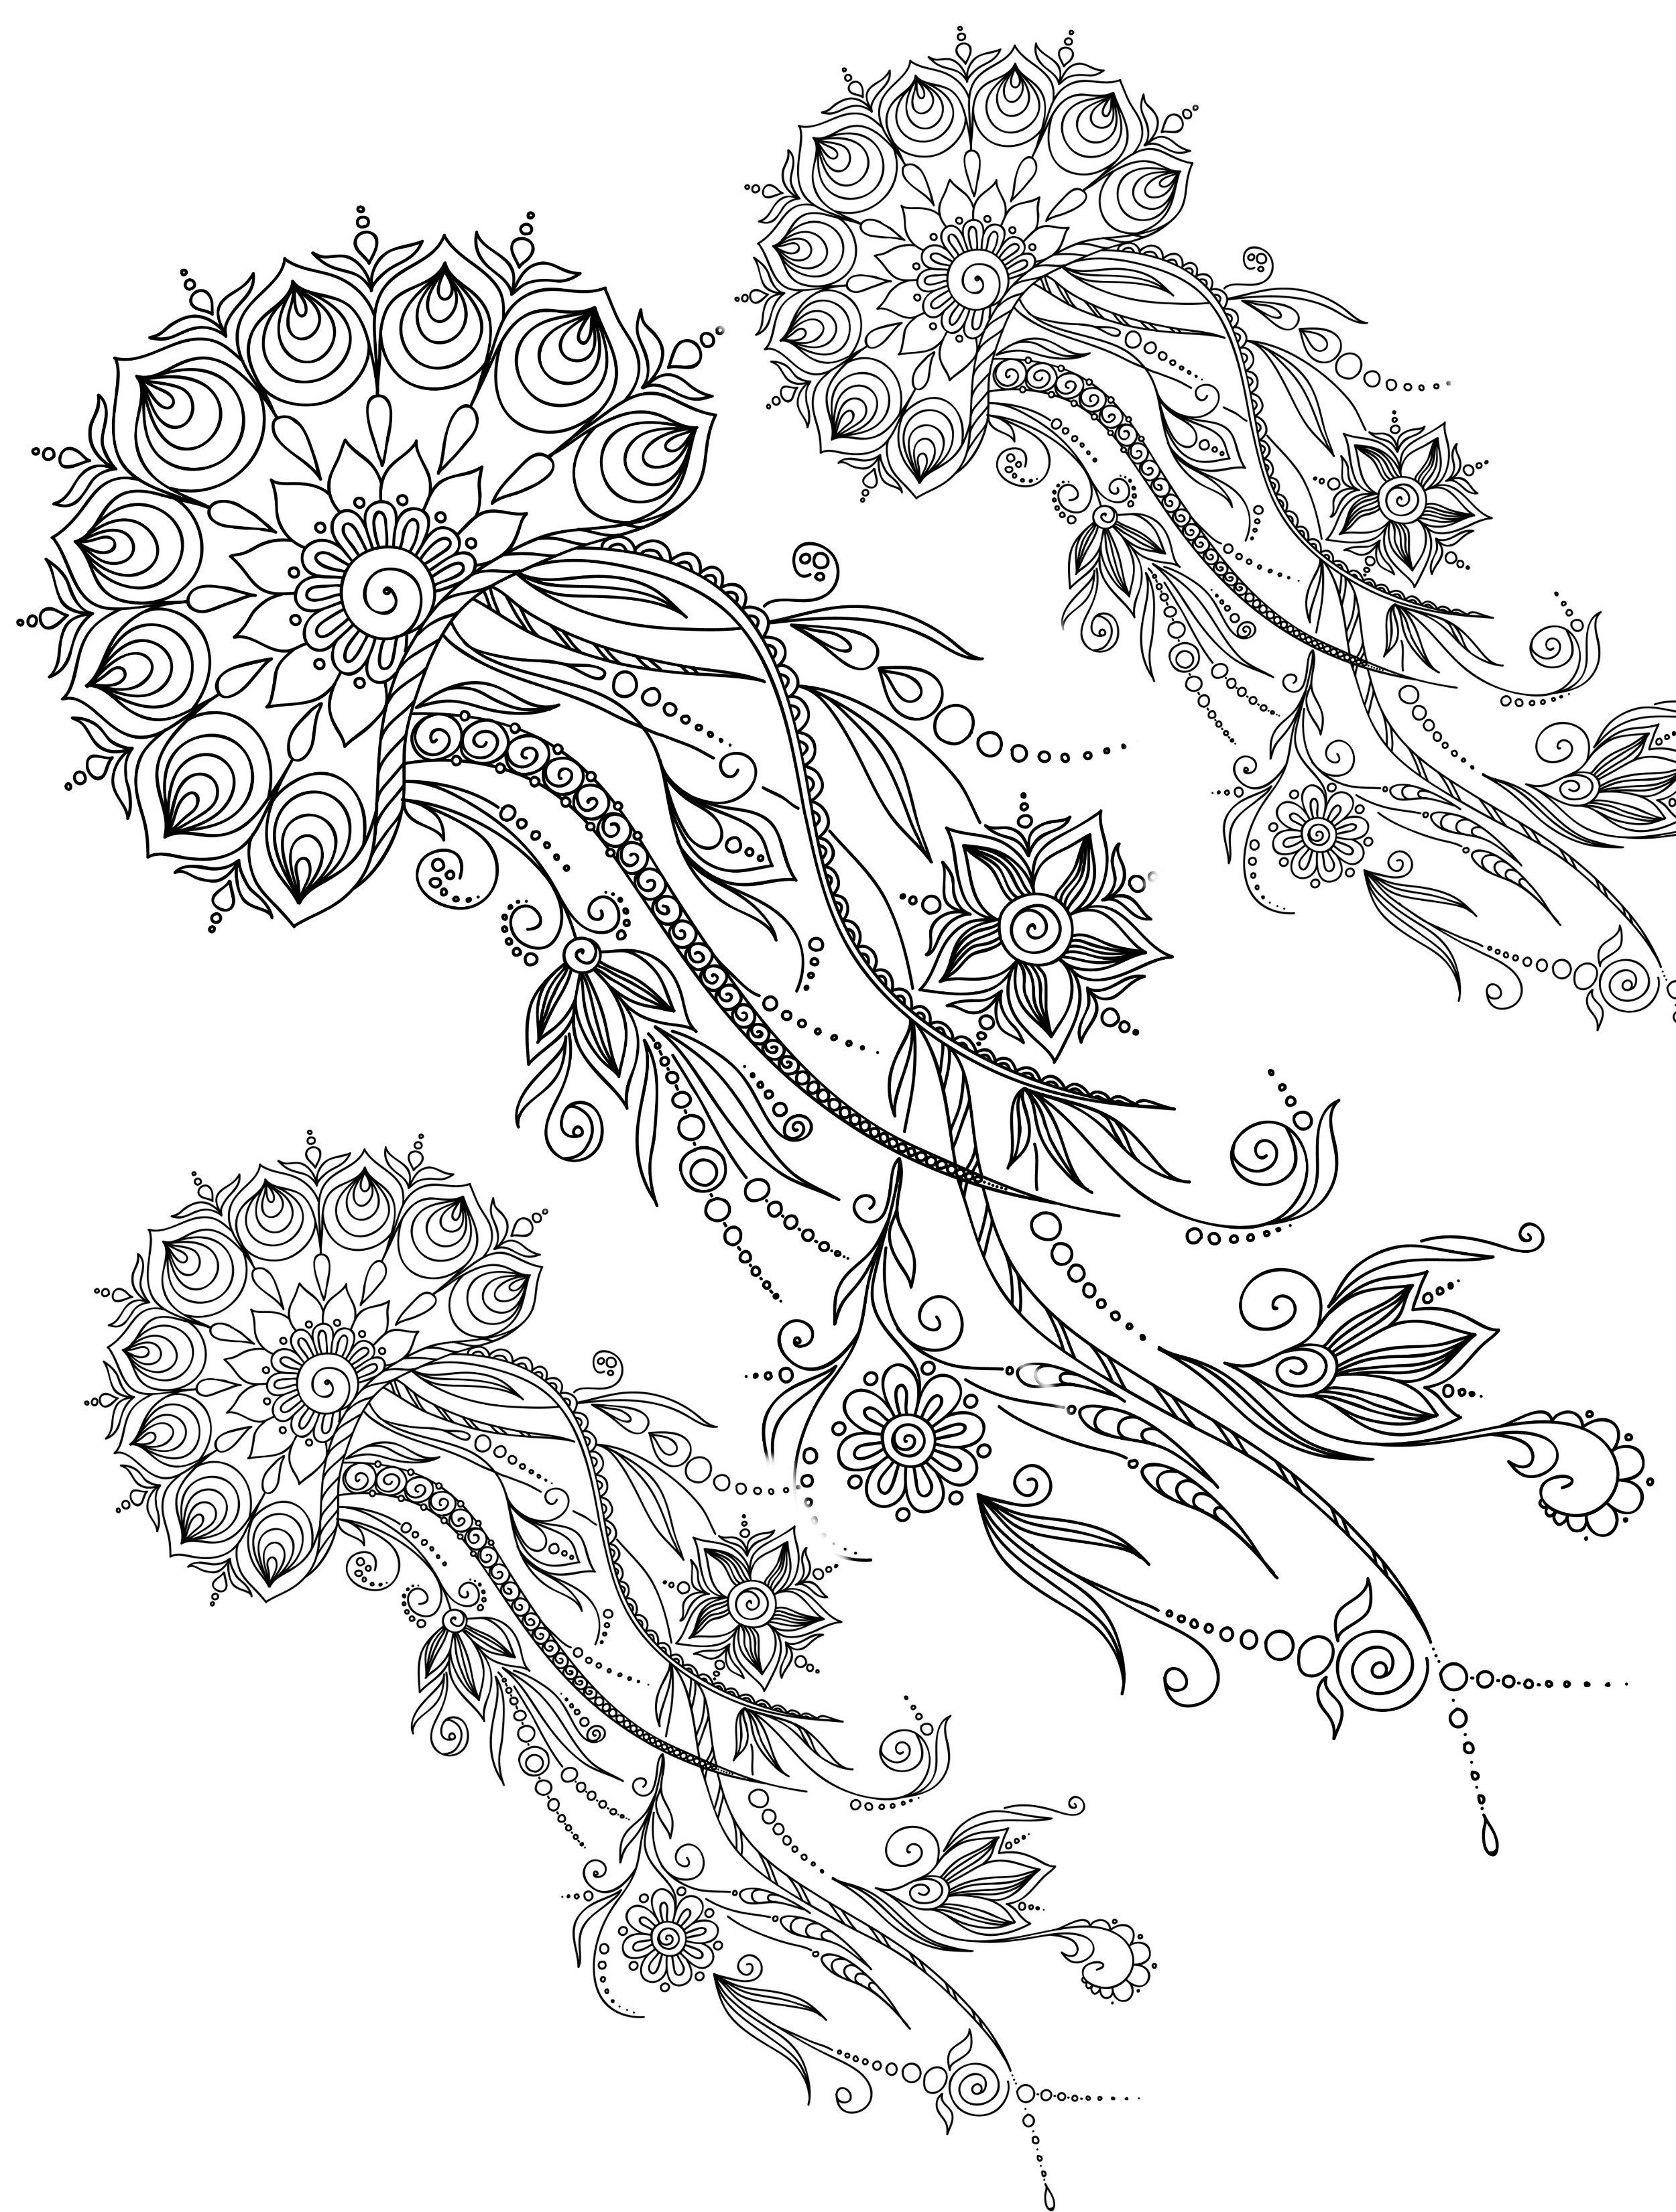 20 Gorgeous Free Printable Adult Coloring Pages Page 19 of 22